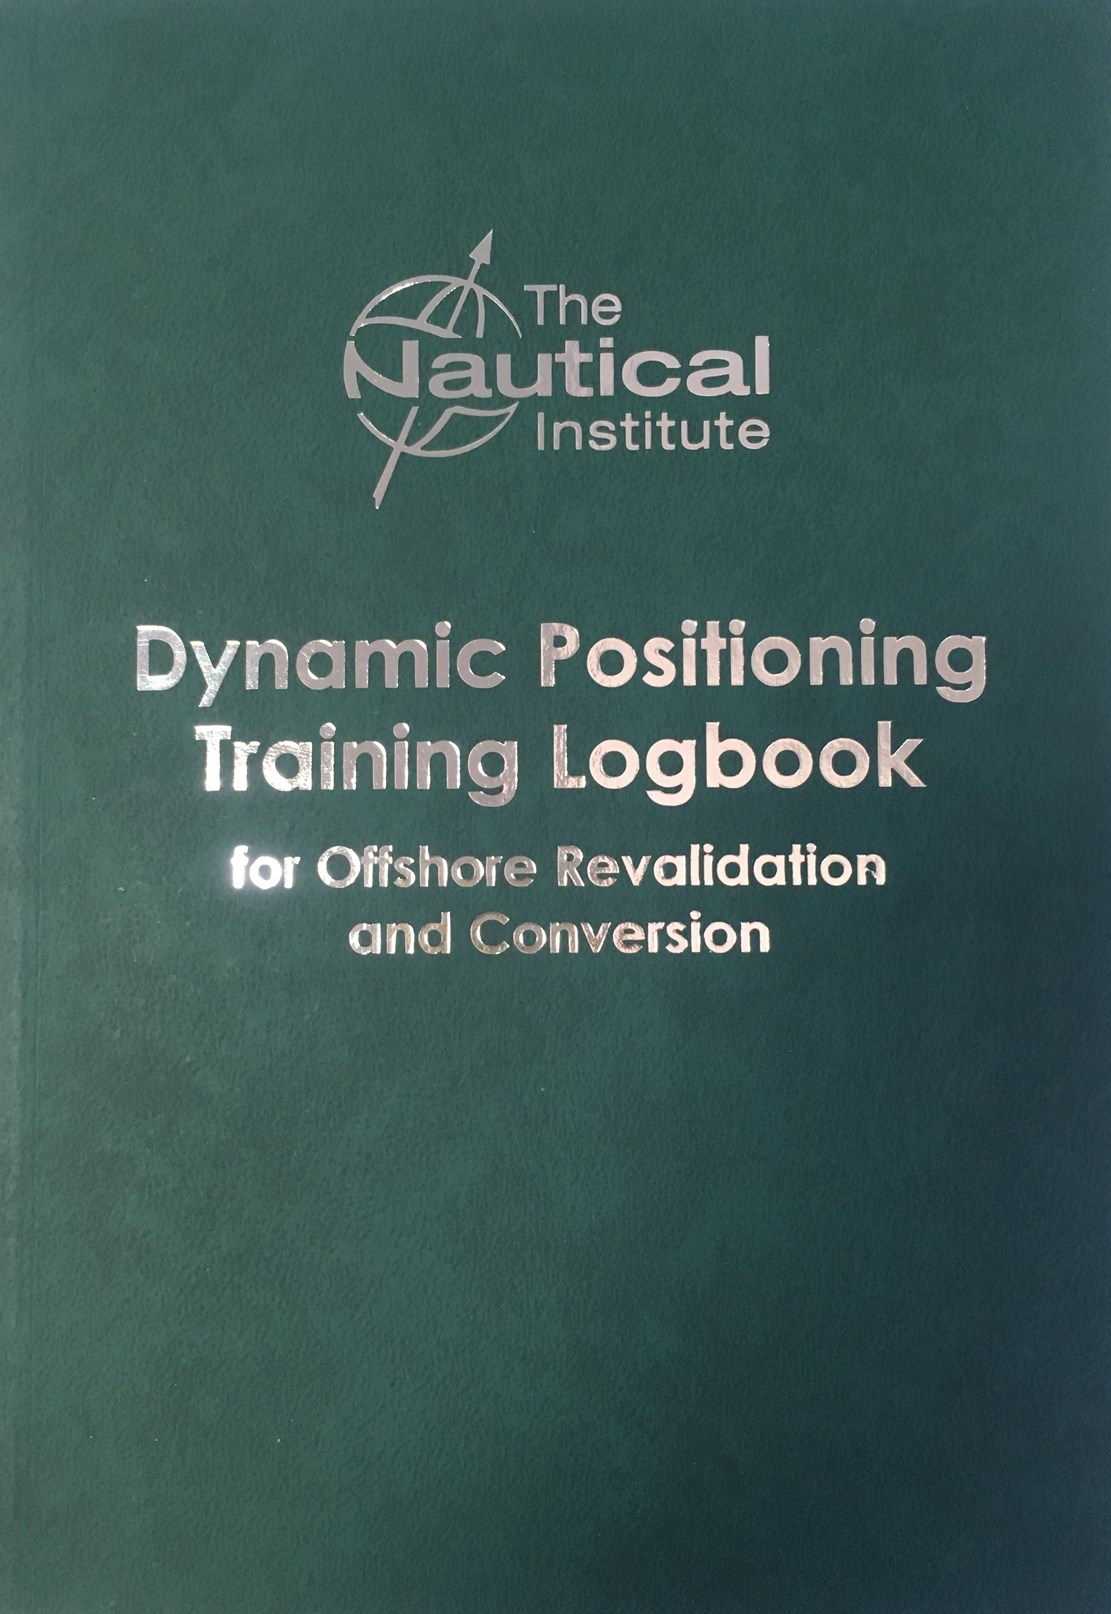 Revalidation Logbook Cover